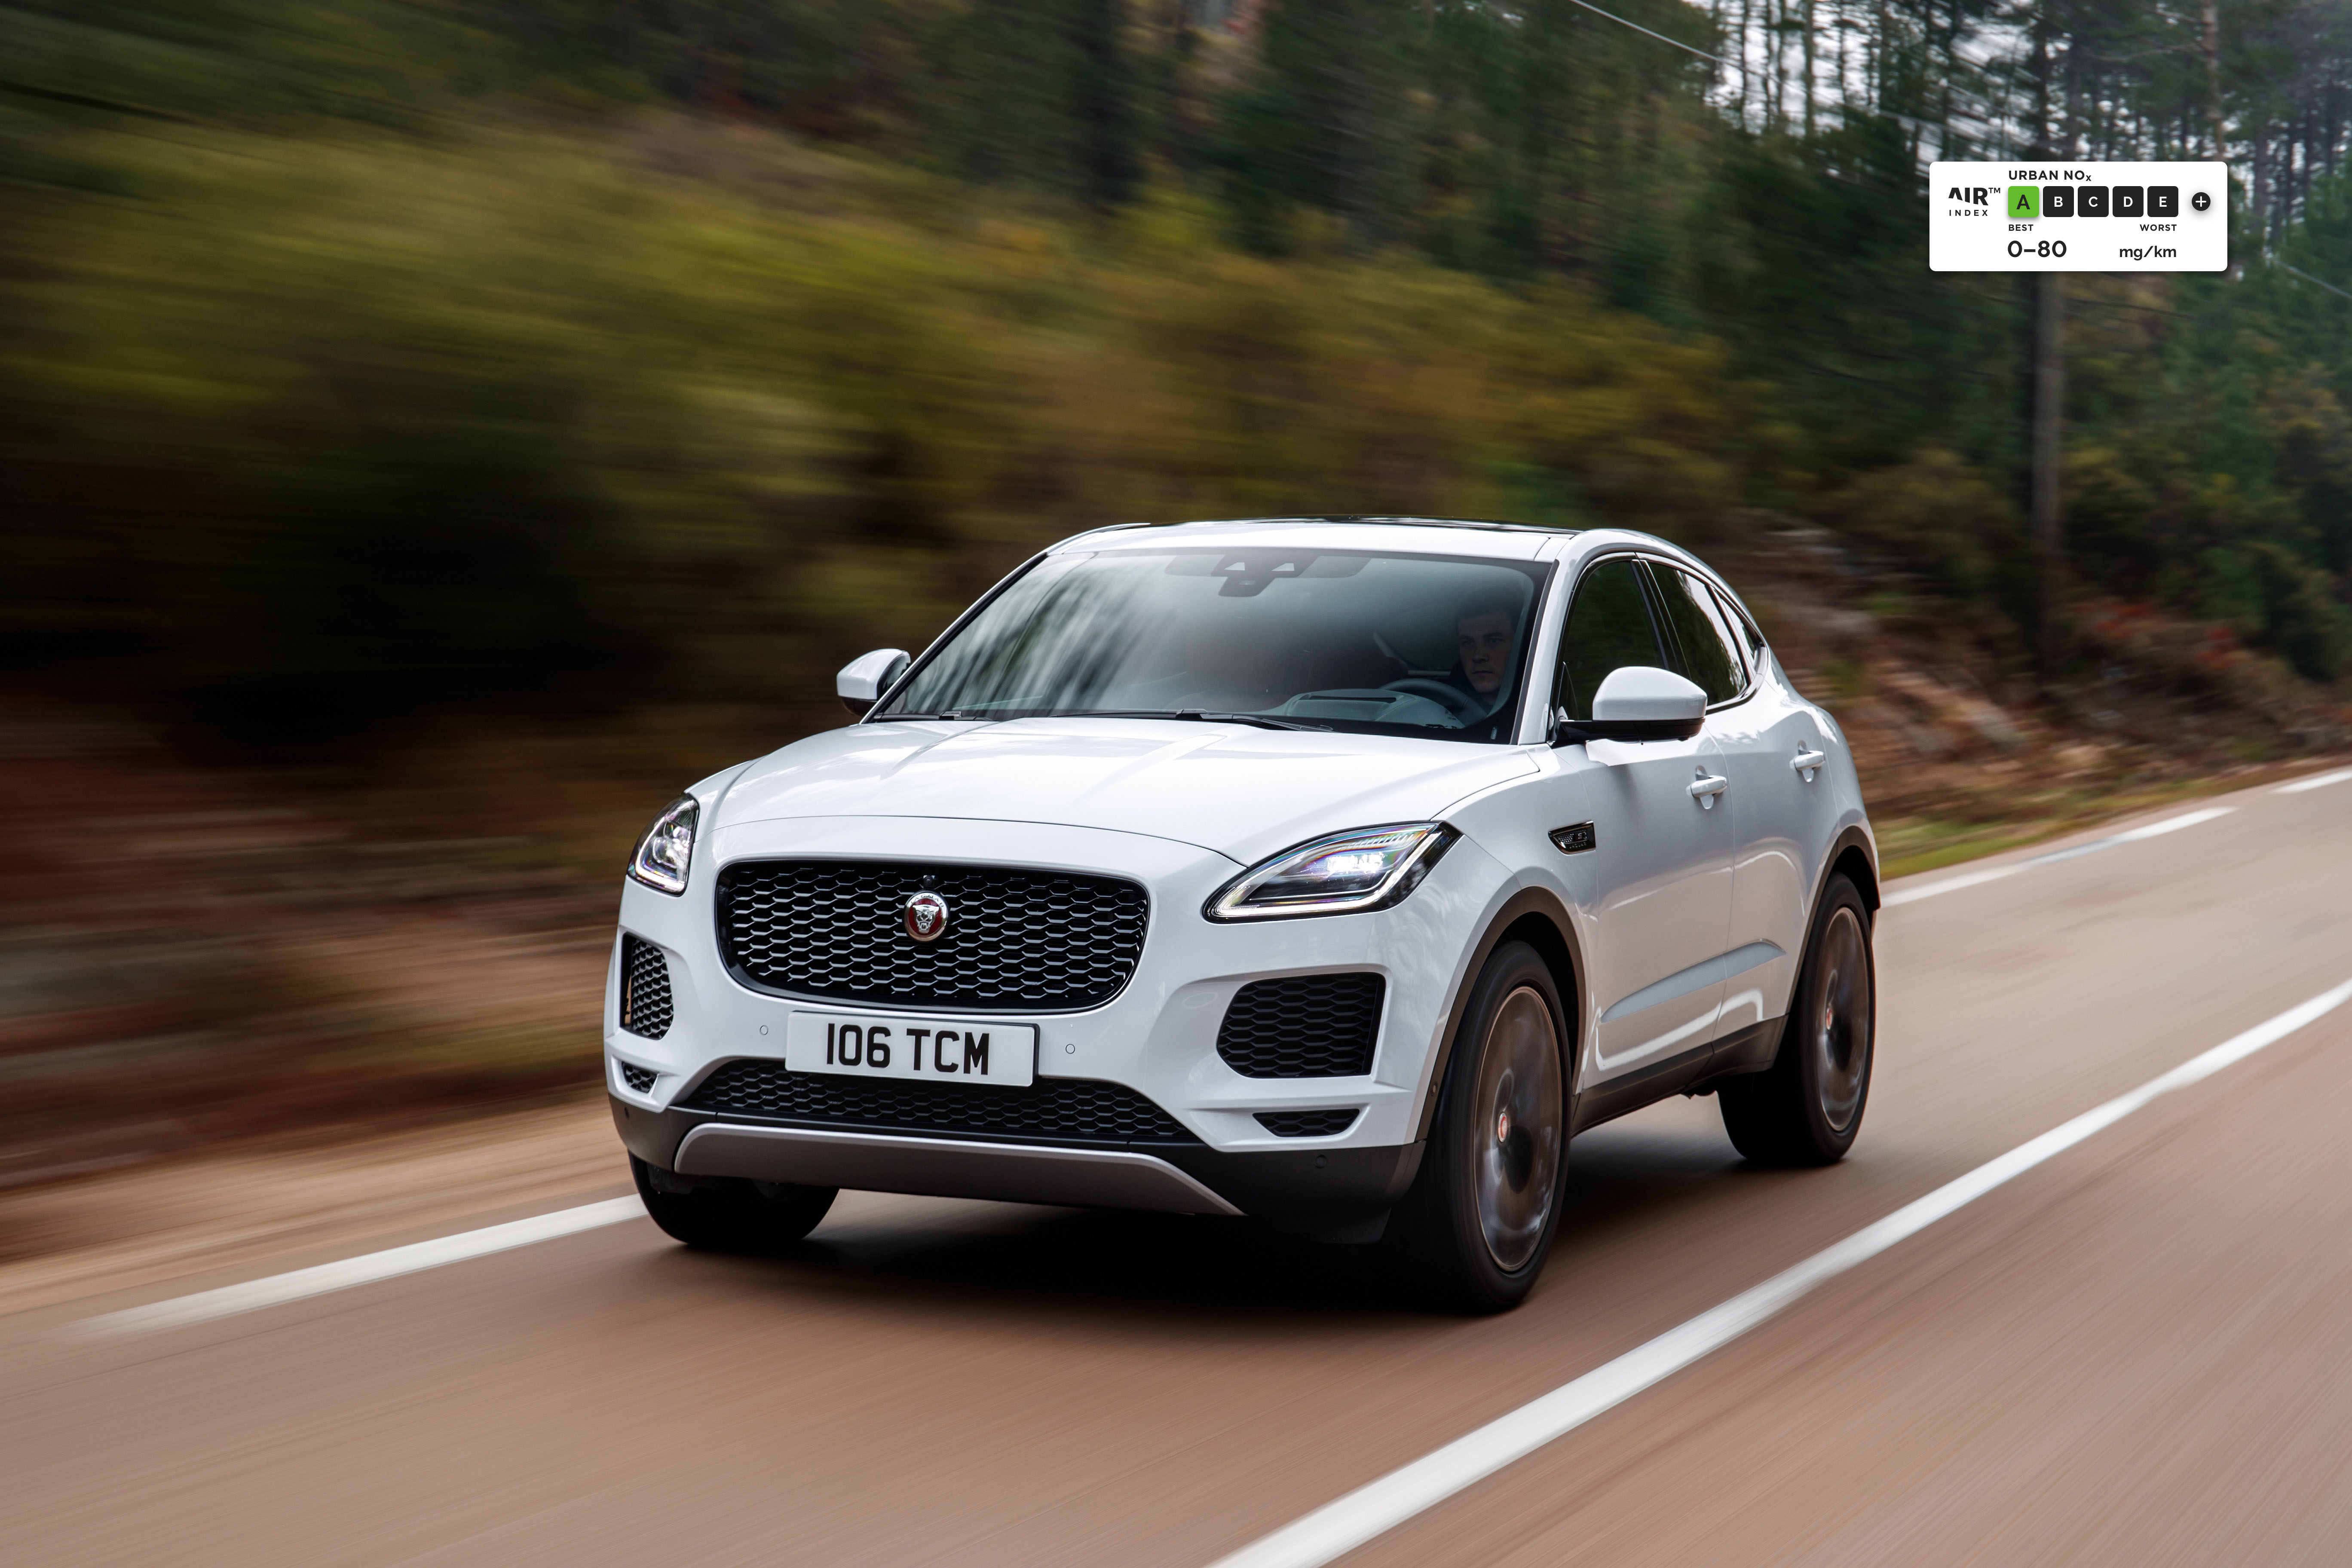 INDEPENDENT EMISSIONS TESTING REVEALS JAGUAR LAND ROVER